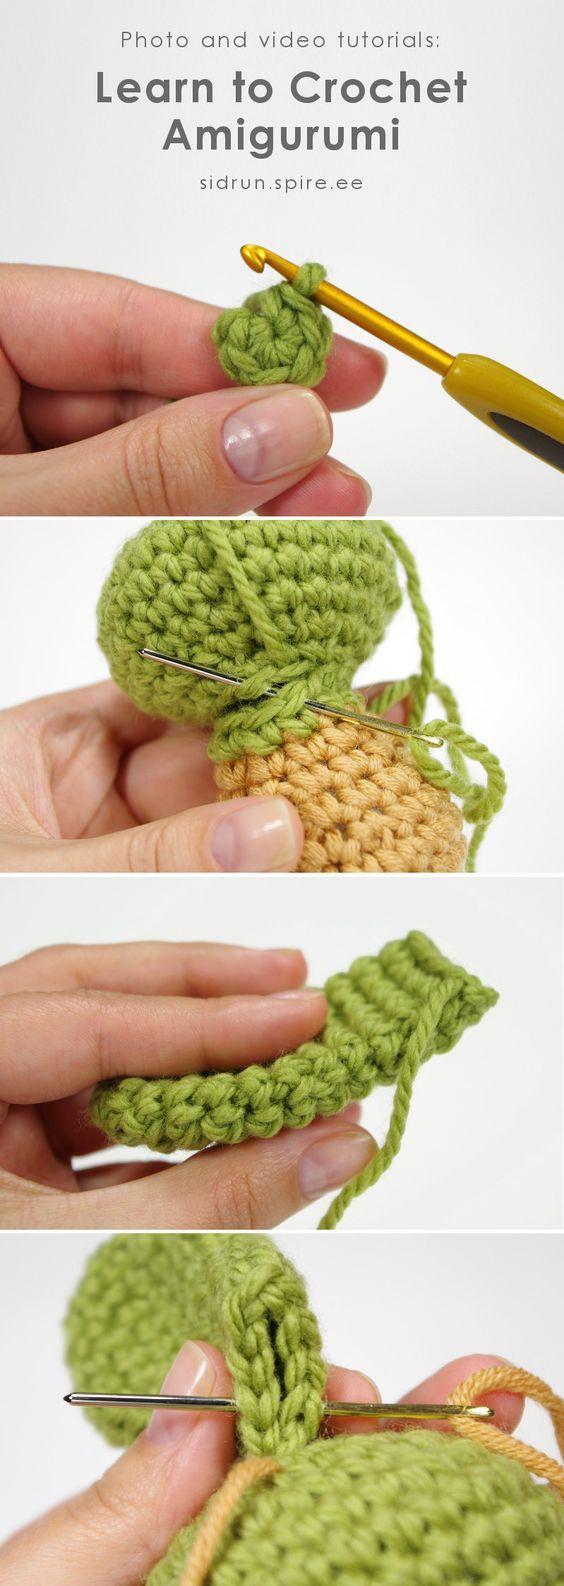 Crochet Basics : Amigurumi There are SO many amazing tutorials through this link. Seriously check it out.   Source: http://ift.tt/2sAcyRo